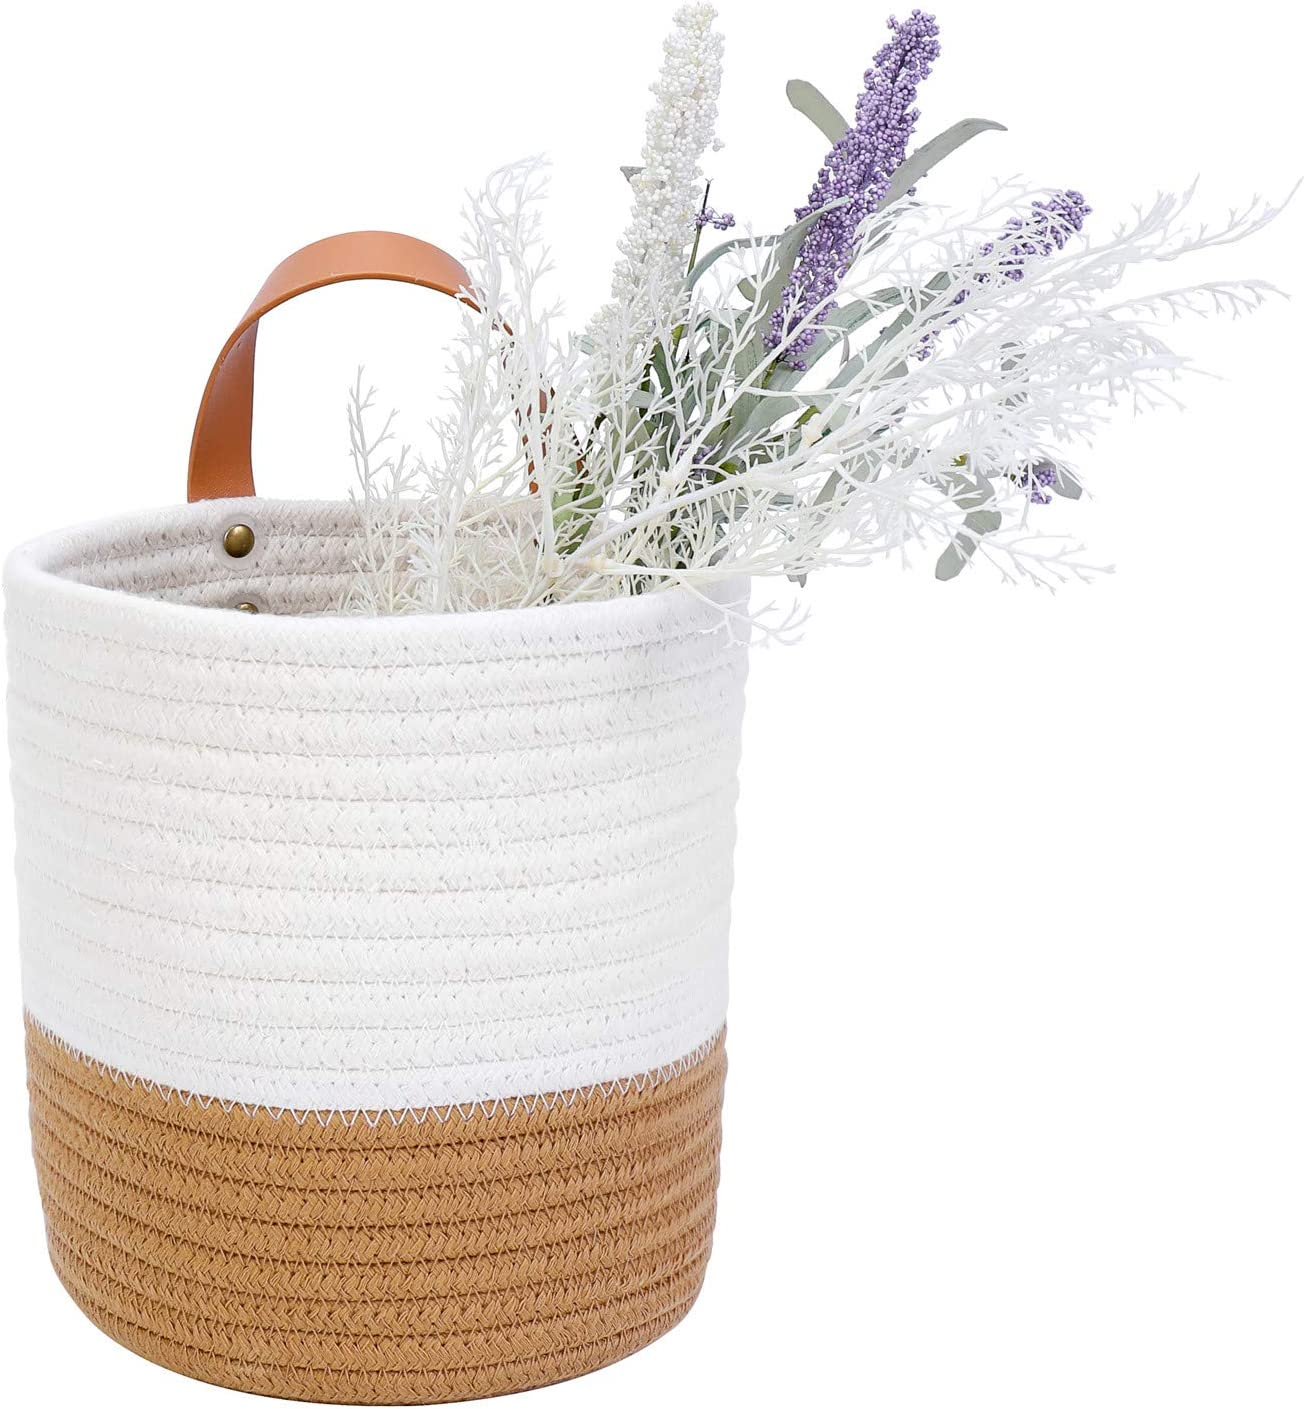 Hanging Basket - Wall S for Baskets Organizing Boston Mall Safety and trust